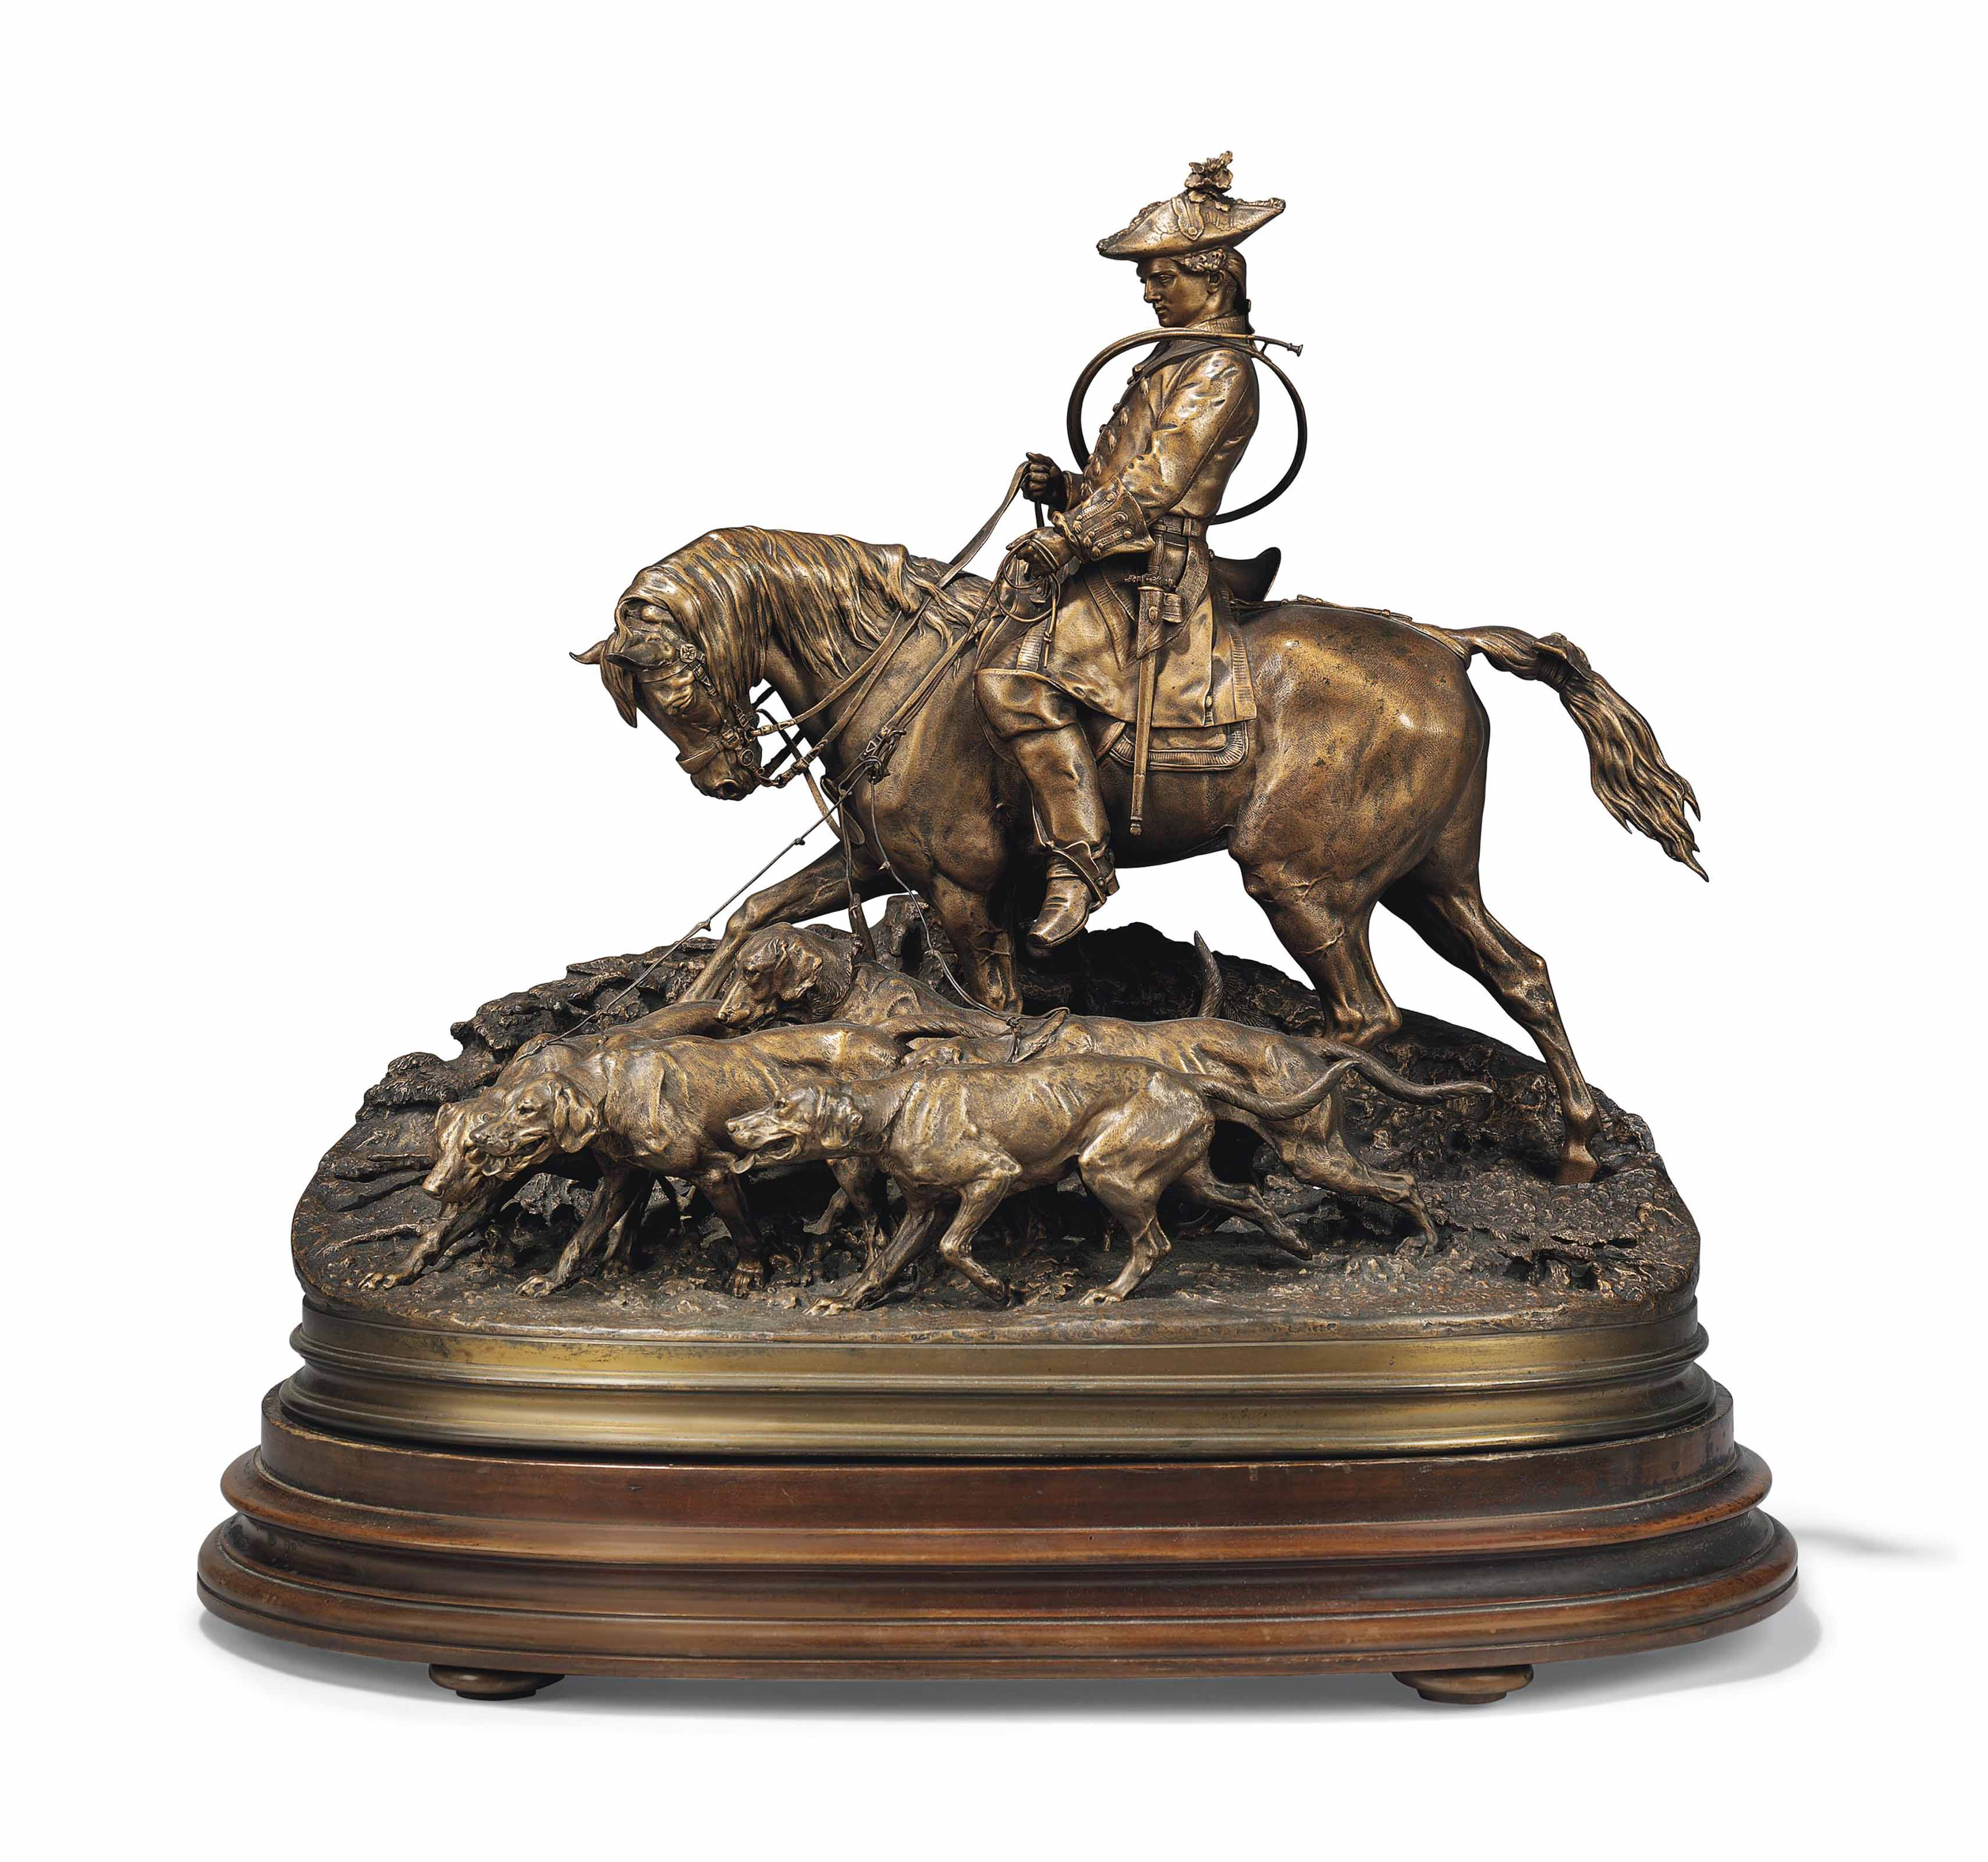 A FRENCH PATINATED-BRONZE EQUESTRIAN GROUP, ENTITLED 'VALET DE CHASSE (LOUIS XV) ET SA HARDE' (HUNTING VALET (LOUIS XV) AND HIS HOUNDS)